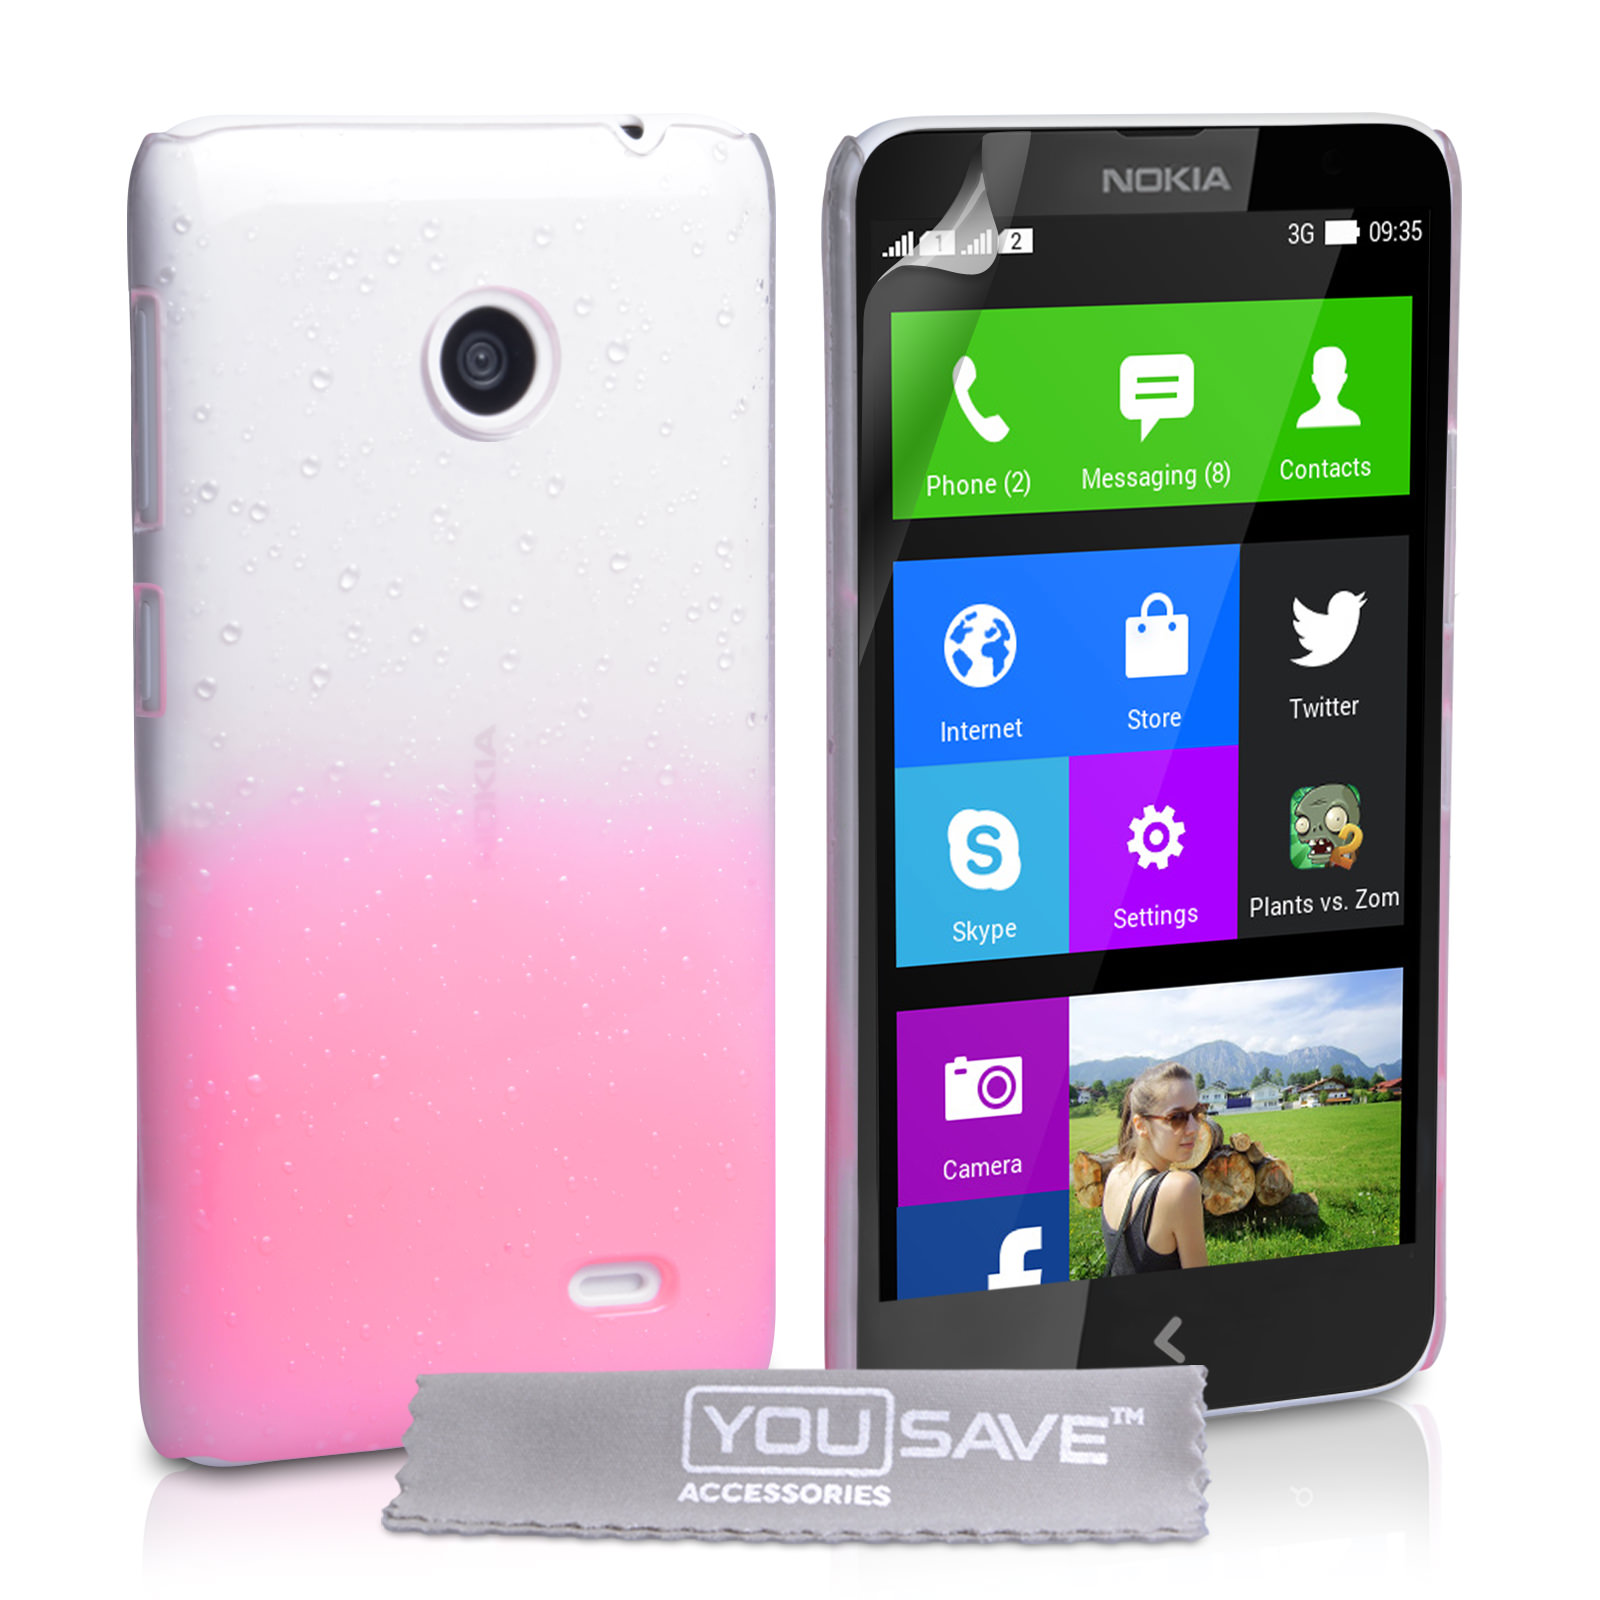 YouSave Accessories Nokia X Raindrop Hard Case - Baby Pink-Clear